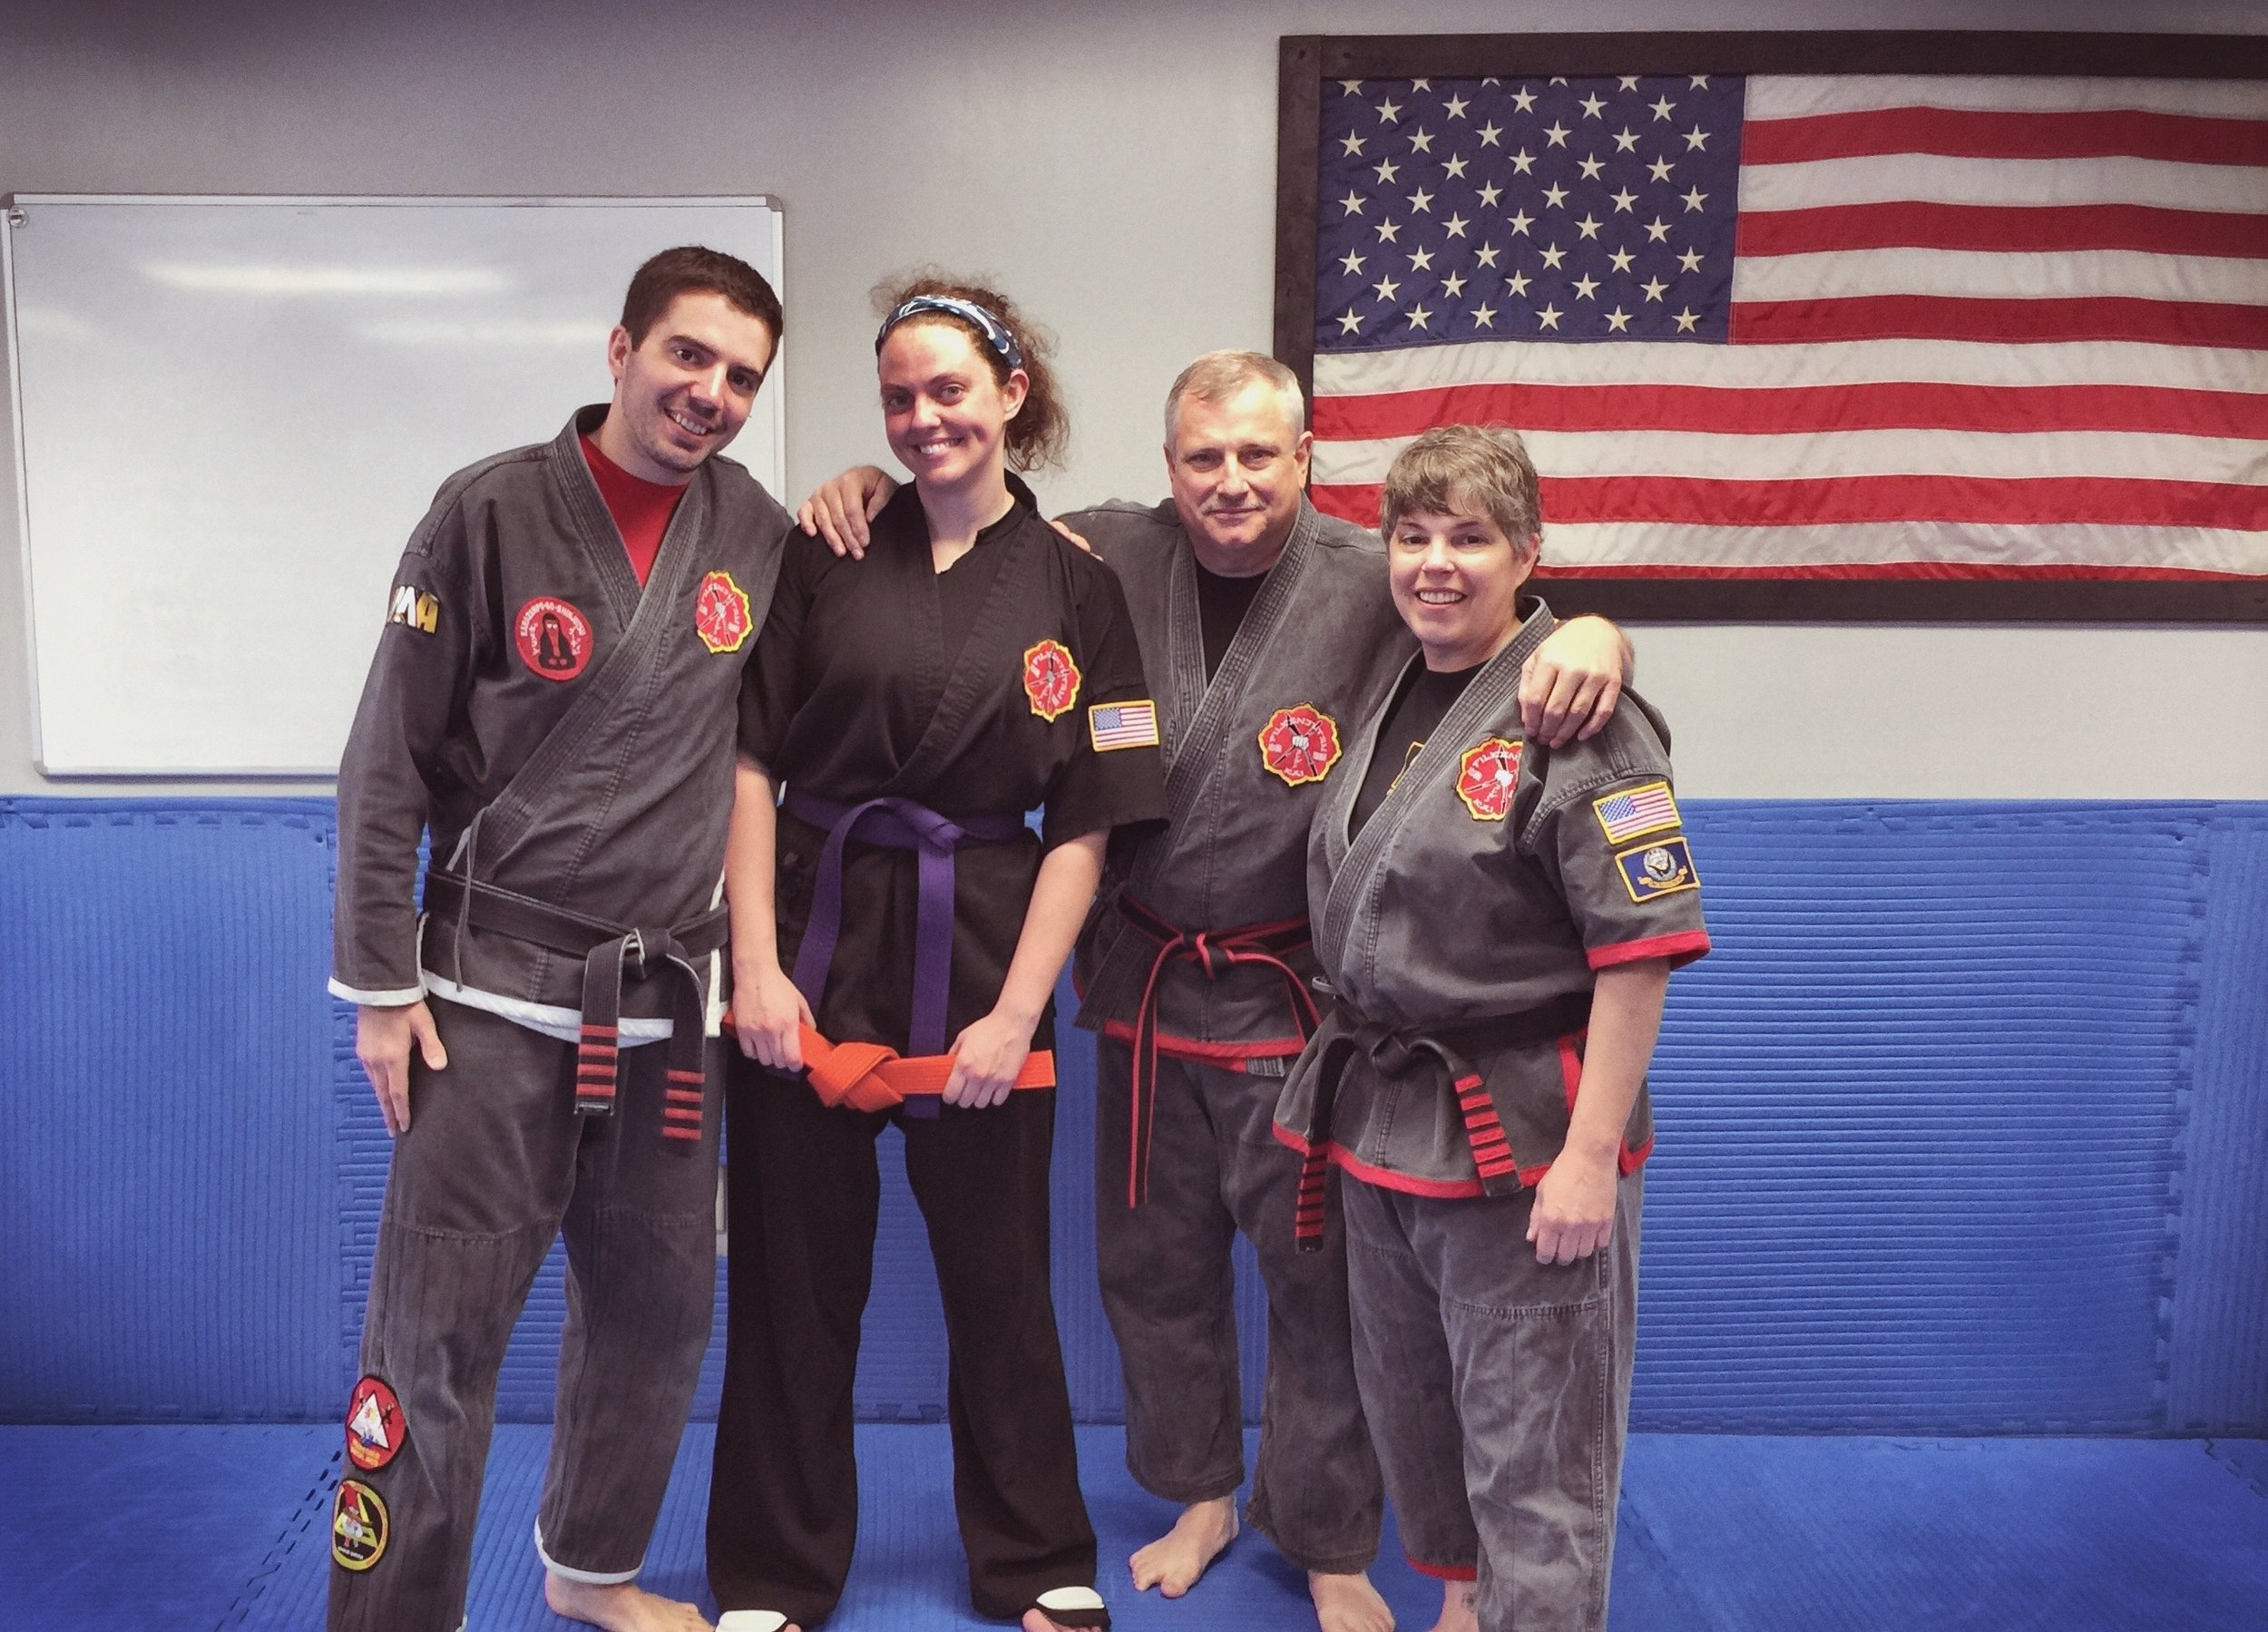 Brittany began her Kenpo training under the founder of PMA and FILKENJUTSU, SiJo Bruce Corrigan. Here she is after earning her purple belt in Kenpo, alongside her husband (SiFu David Corrigan), father-in-law (SiJo Bruce Corrigan), and mother-in-law (SiGung Meg Corrigan).